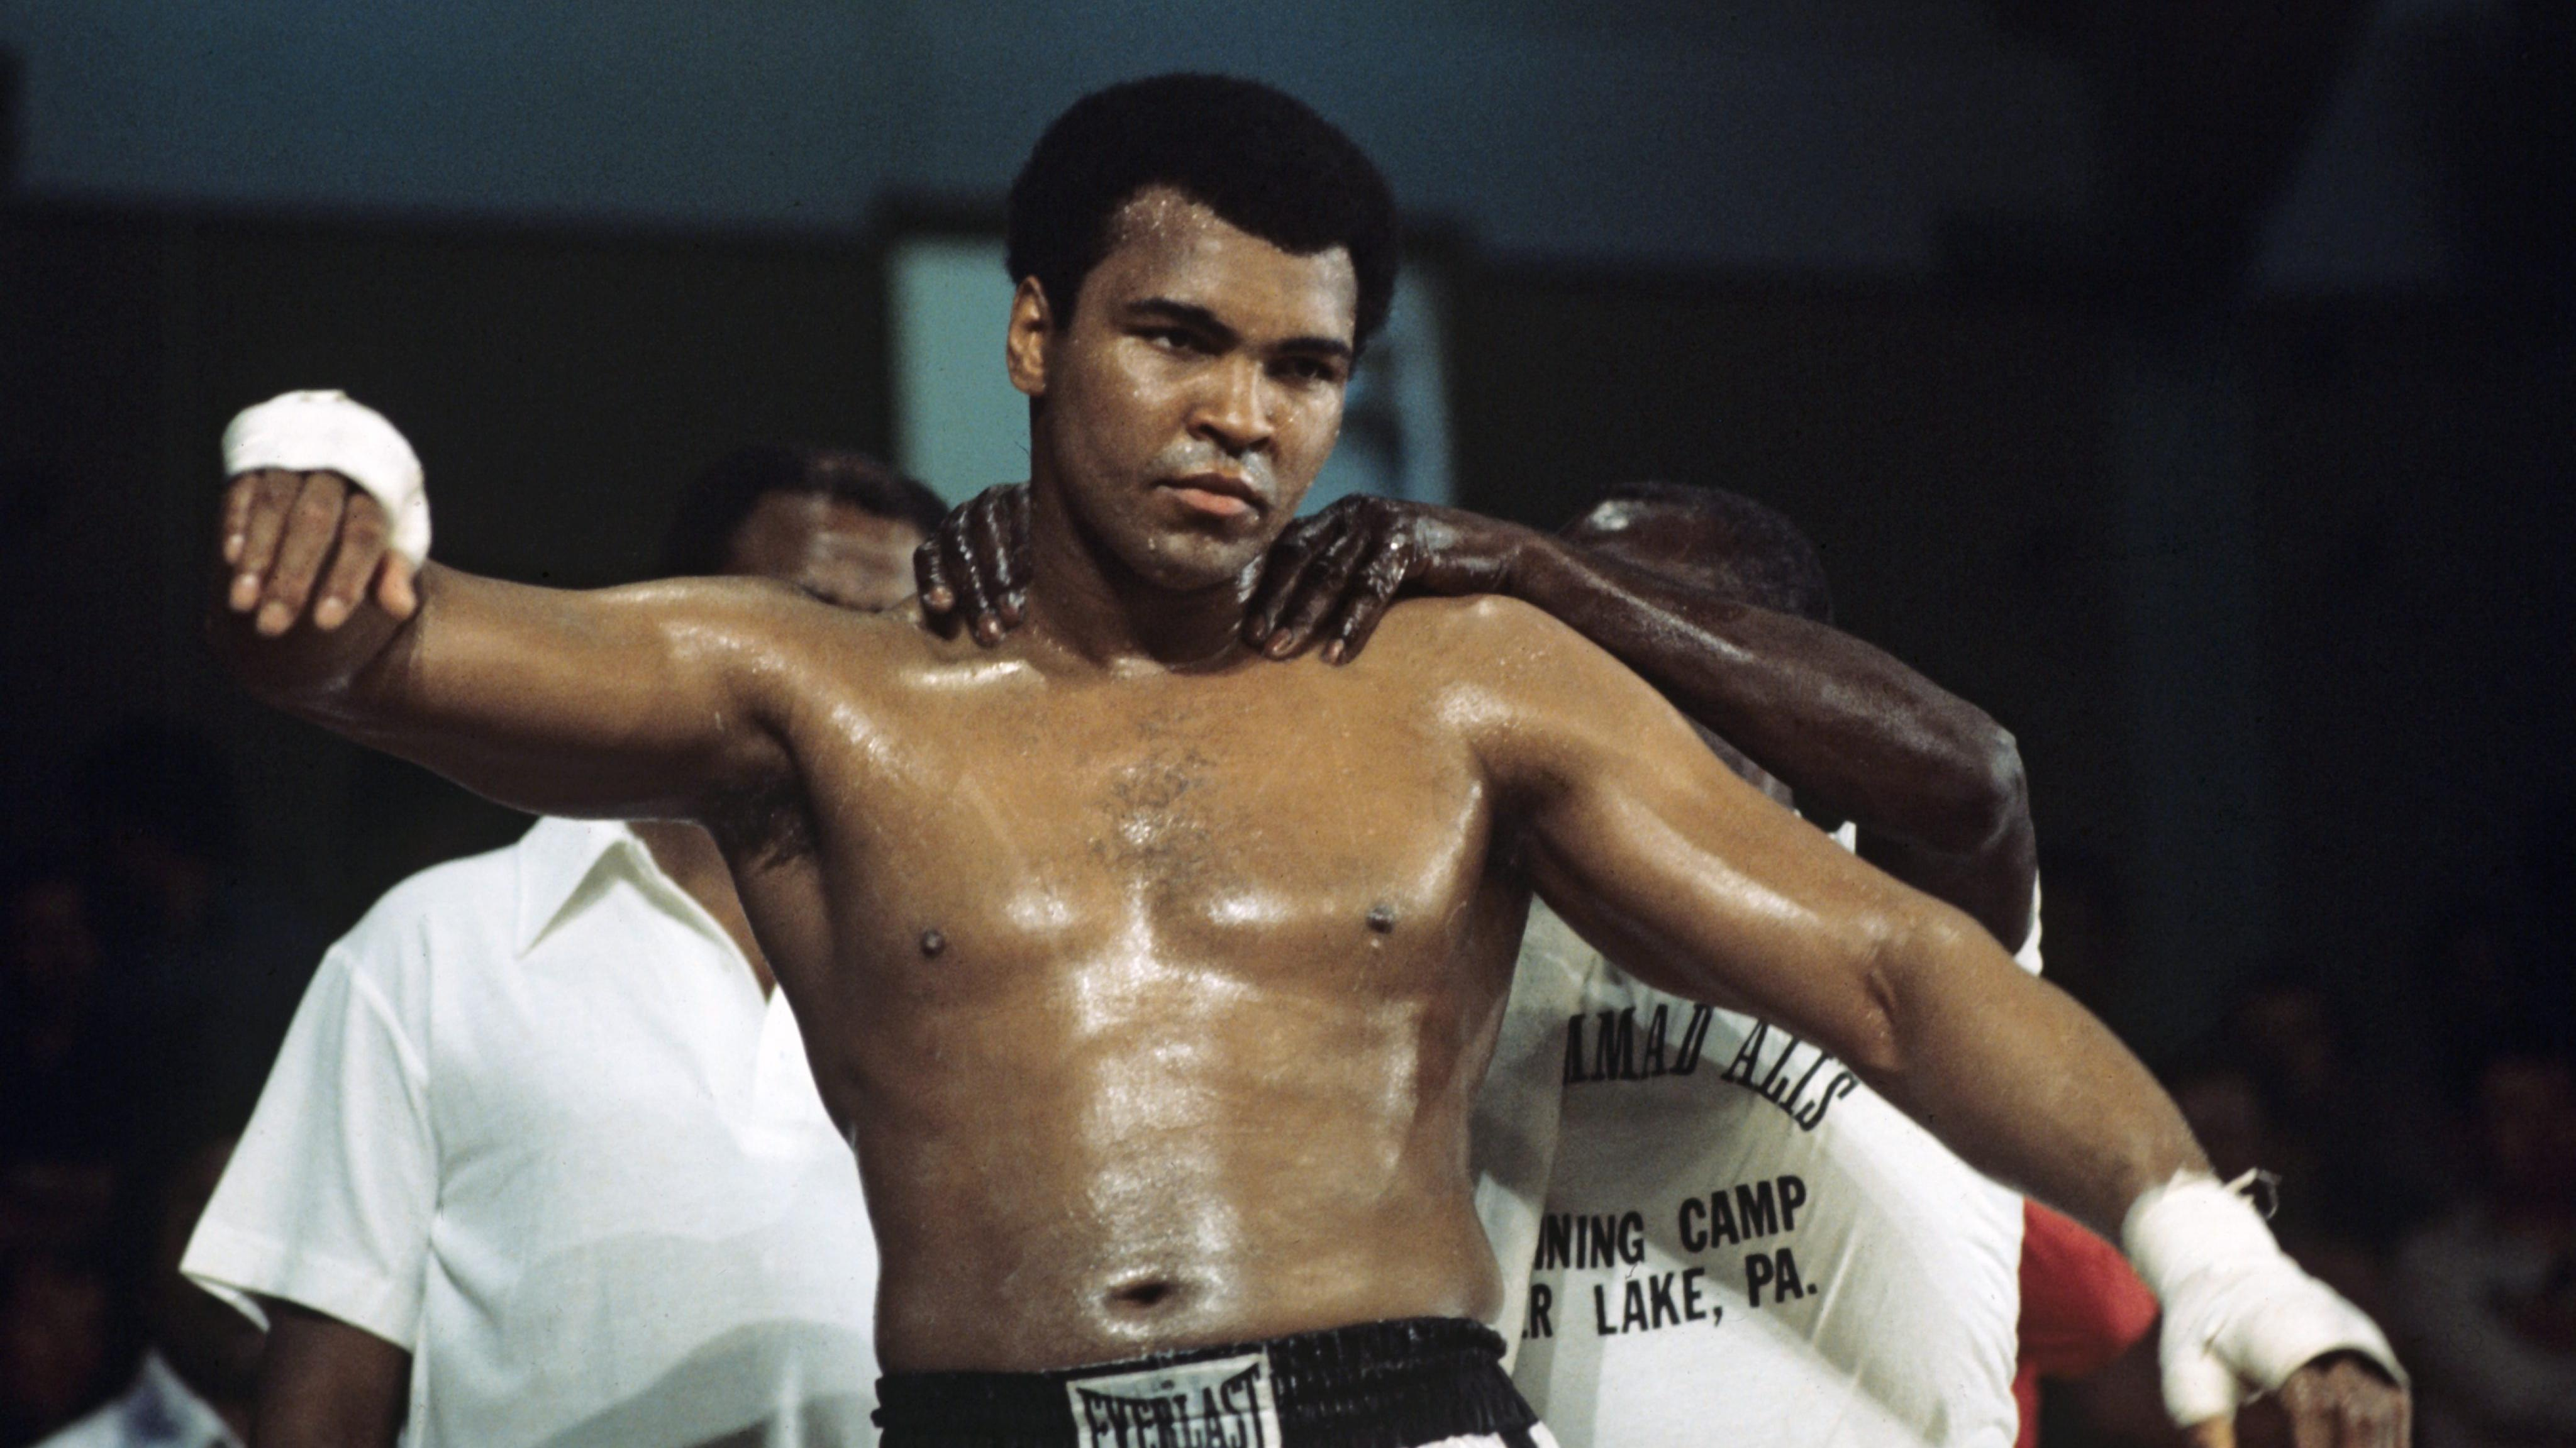 Muhammad Ali: the man behind the towering social and political figure